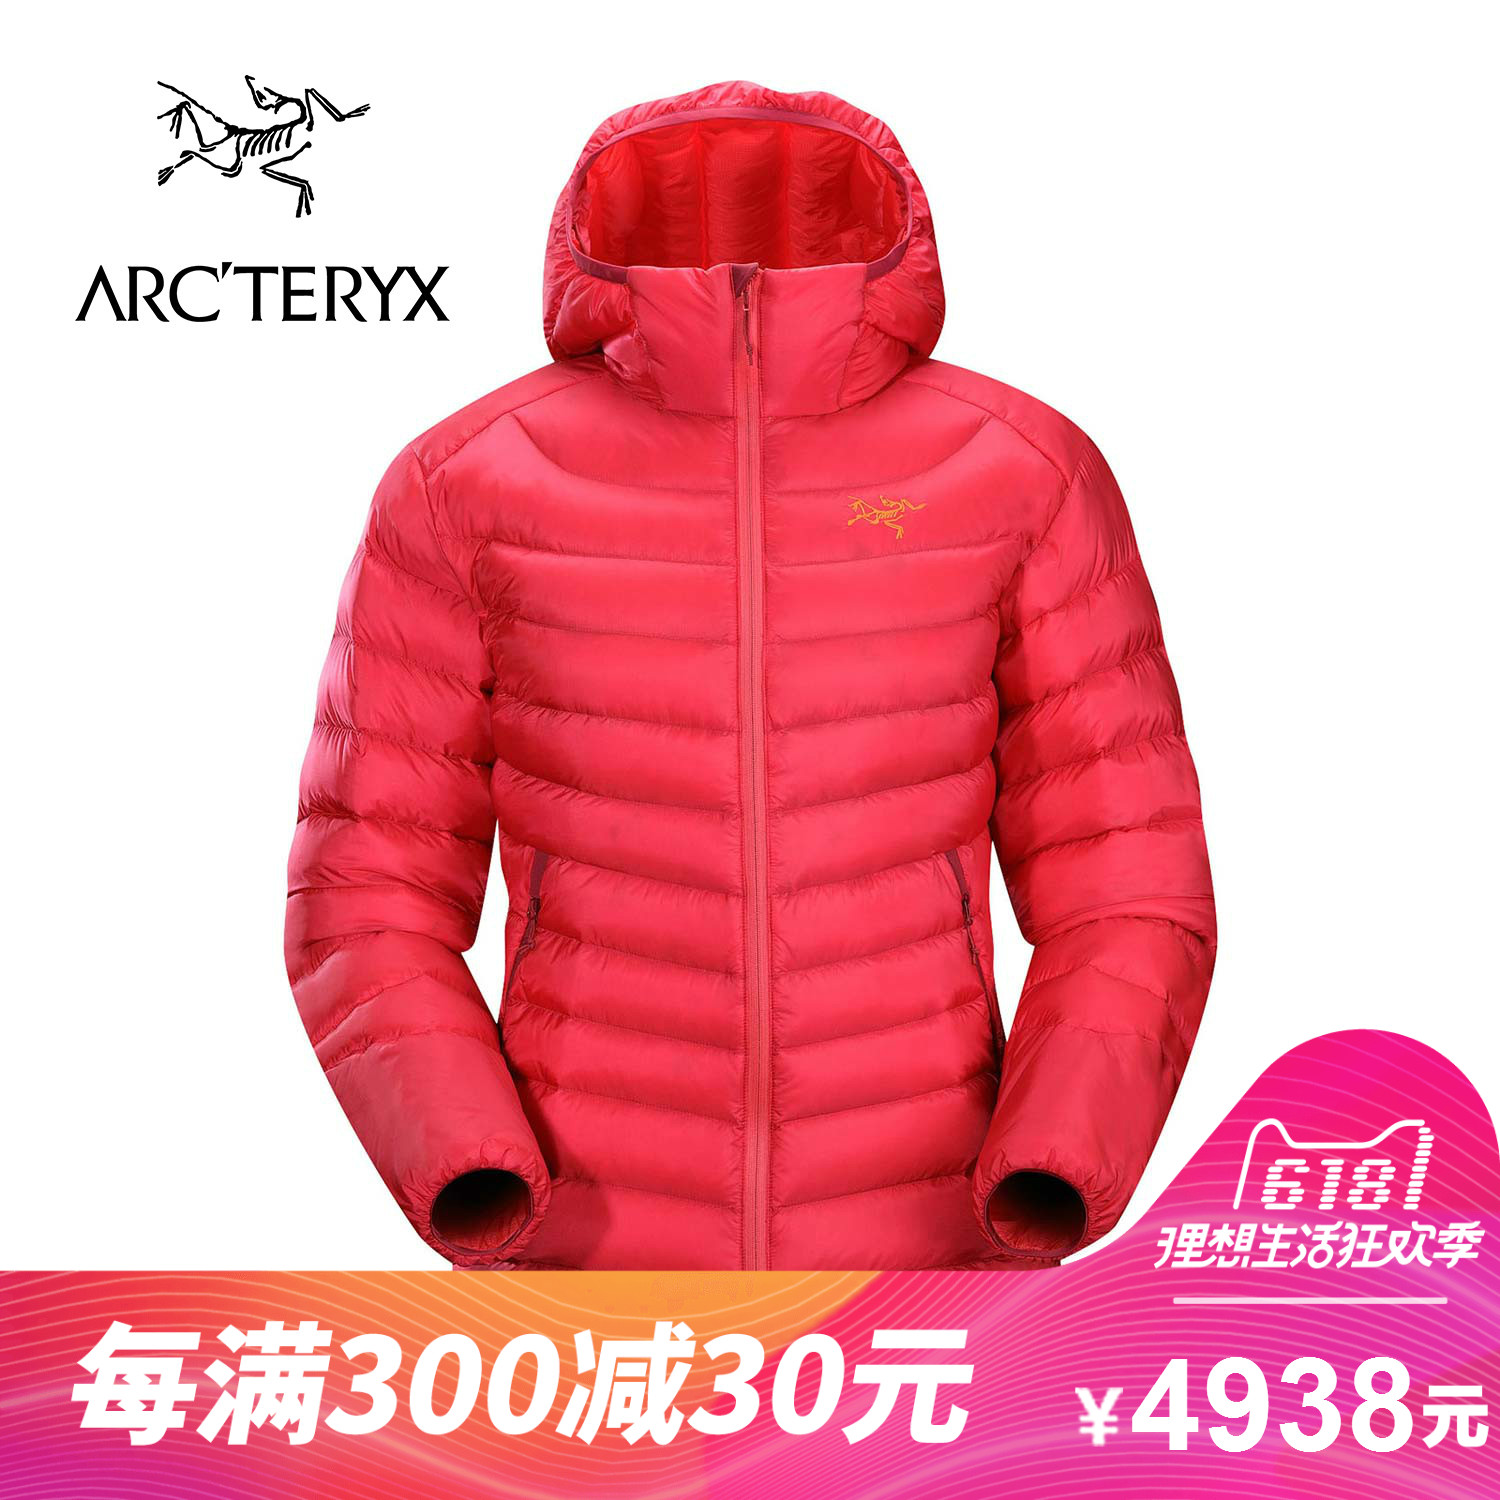 ARCTERYX / Archaeopteryx Women's lightweight warm hooded down jacket Cerium LT Hoody 13238